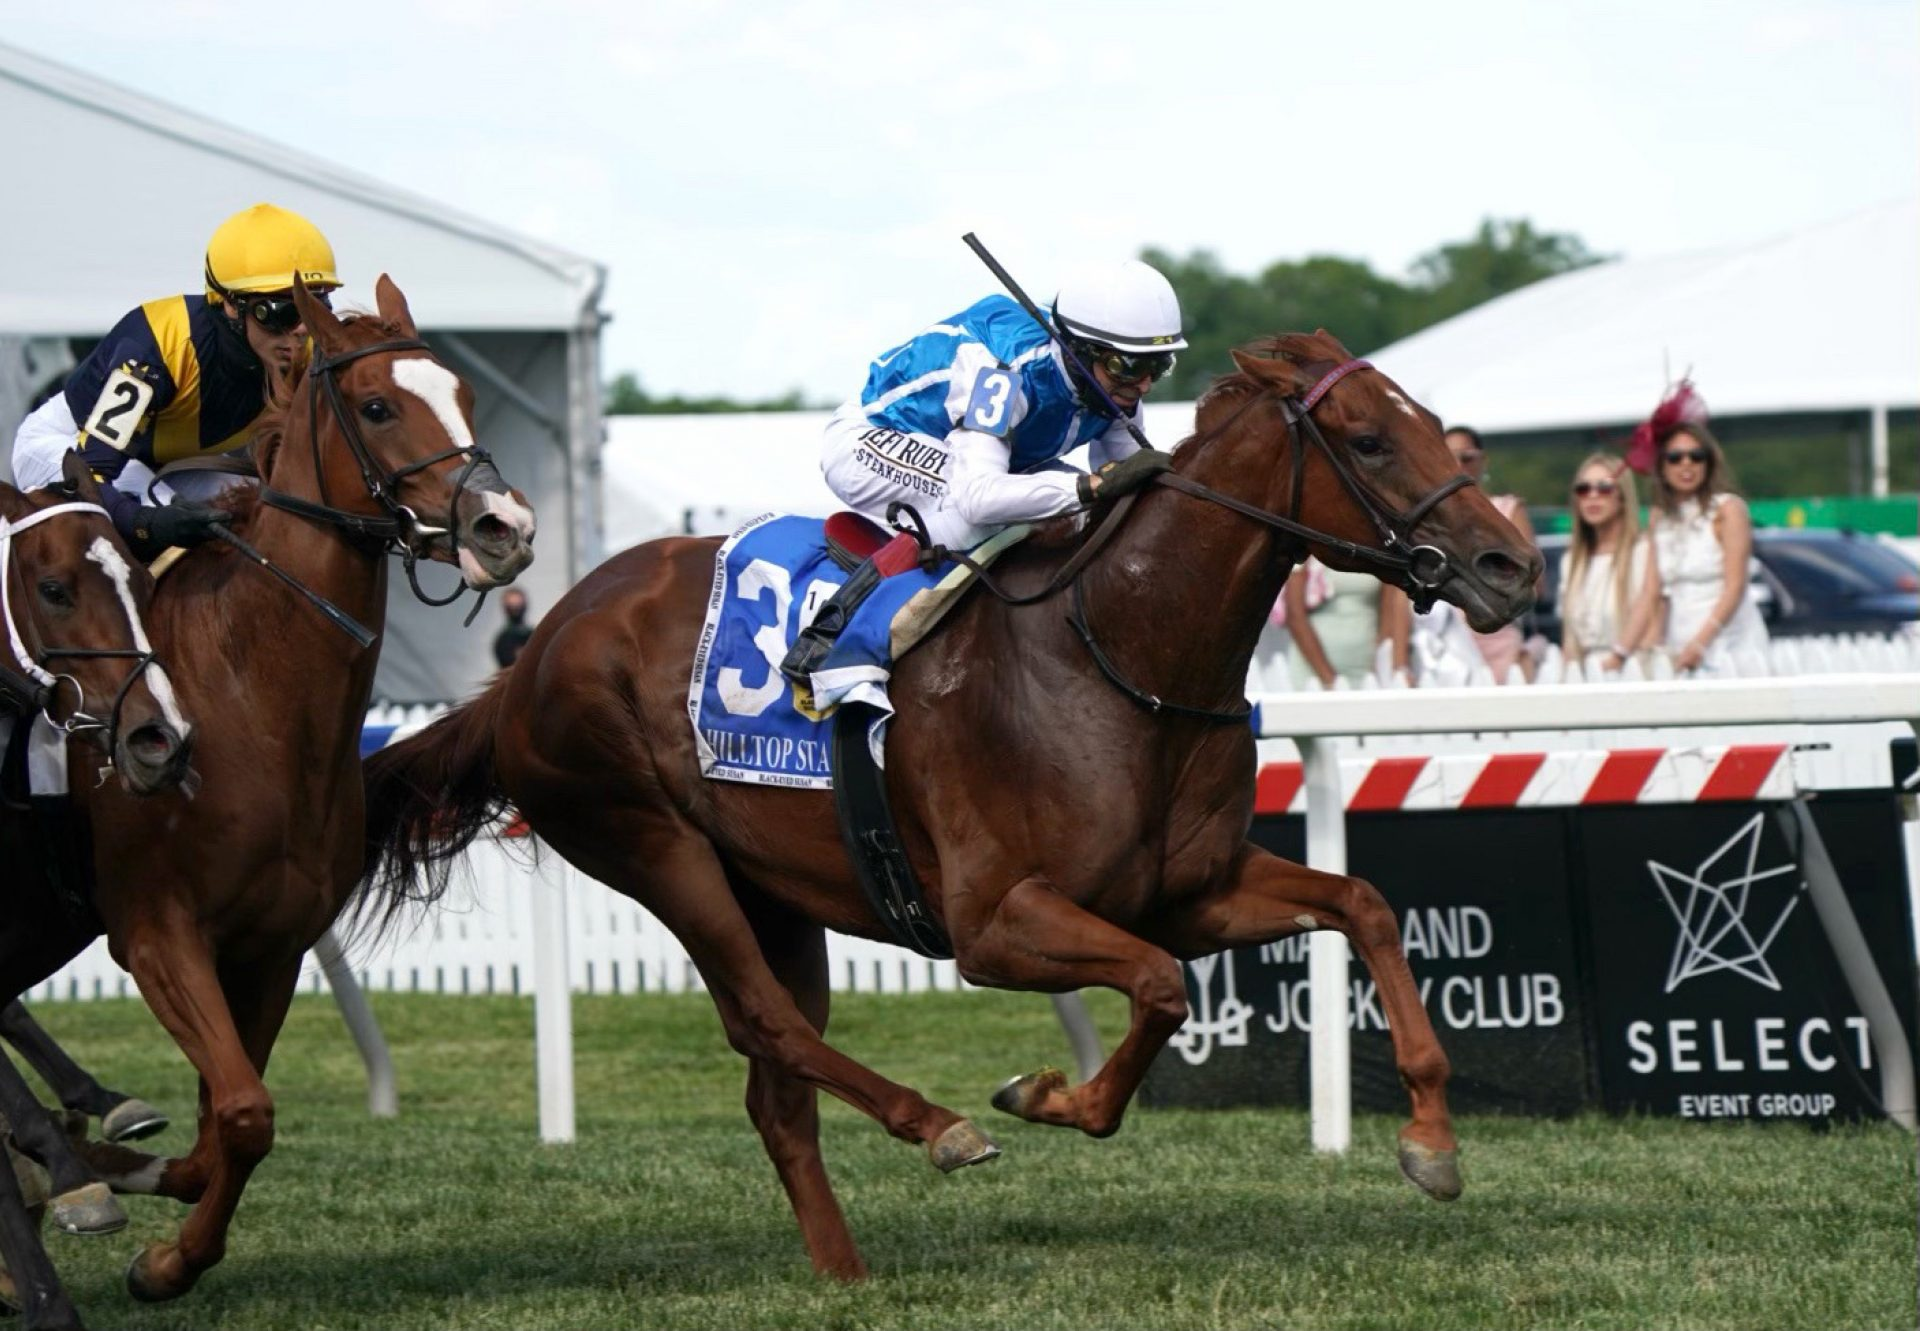 Alda (Munnings) winning the Listed Hilltop Stakes at Pimlico